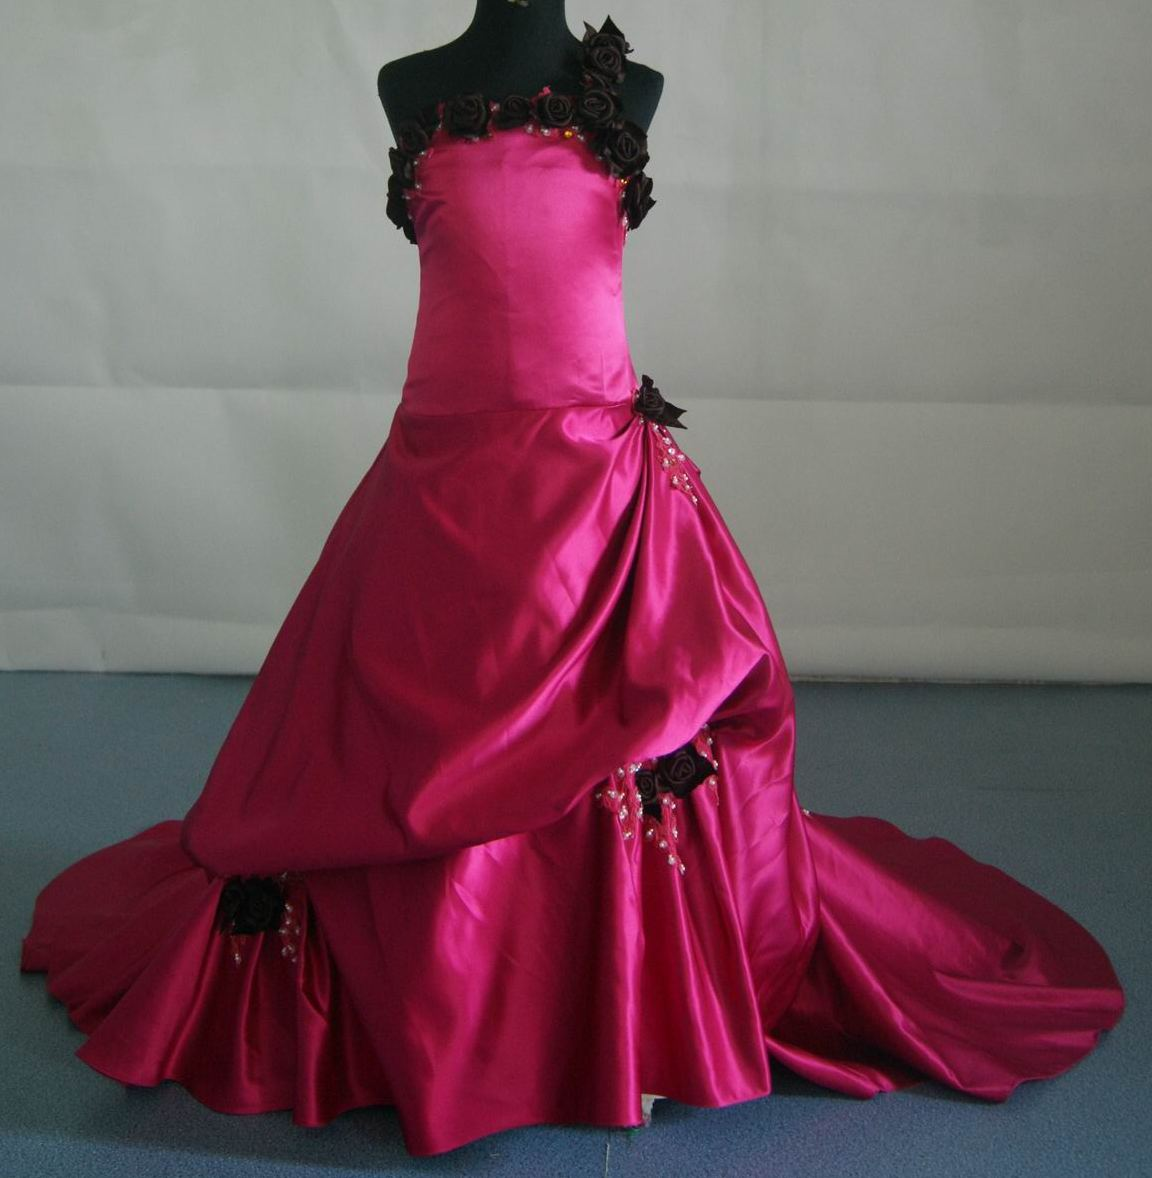 Bunches of roses gown